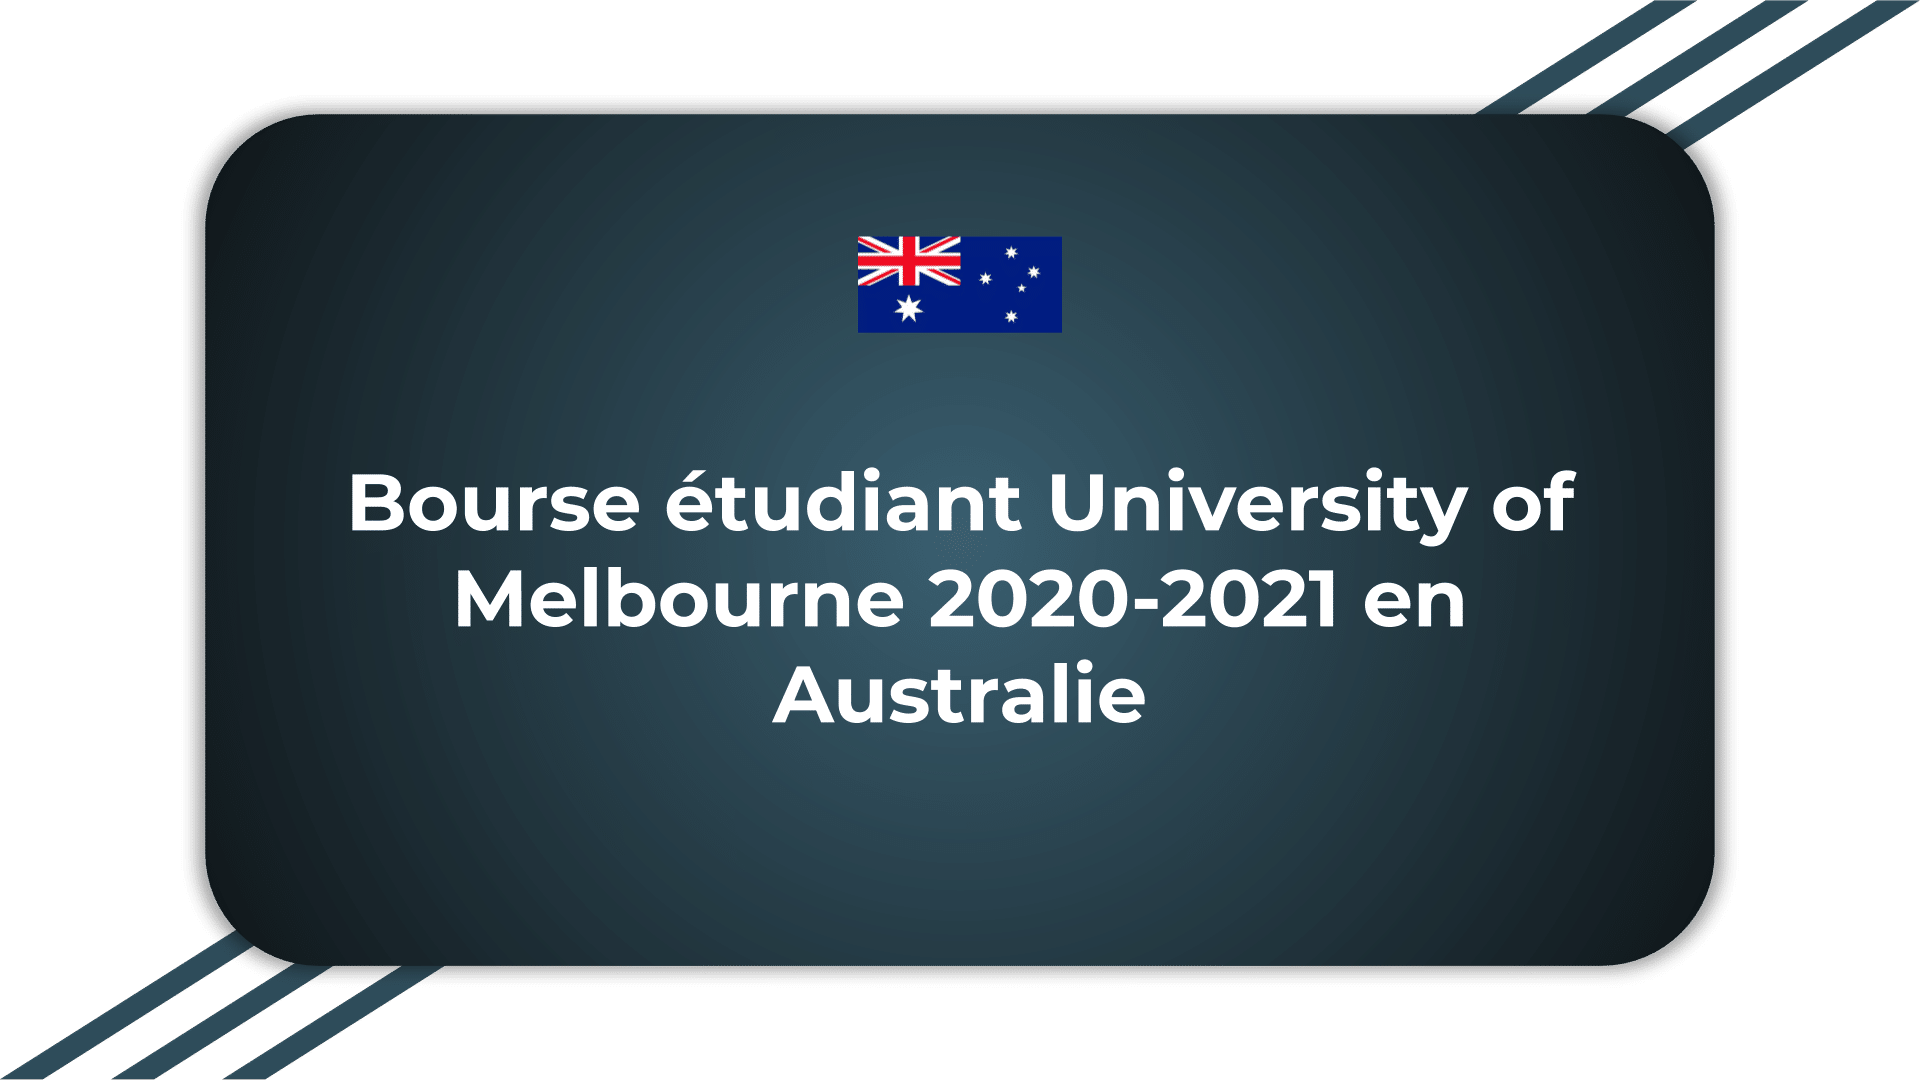 Bourse étudiant University of Melbourne